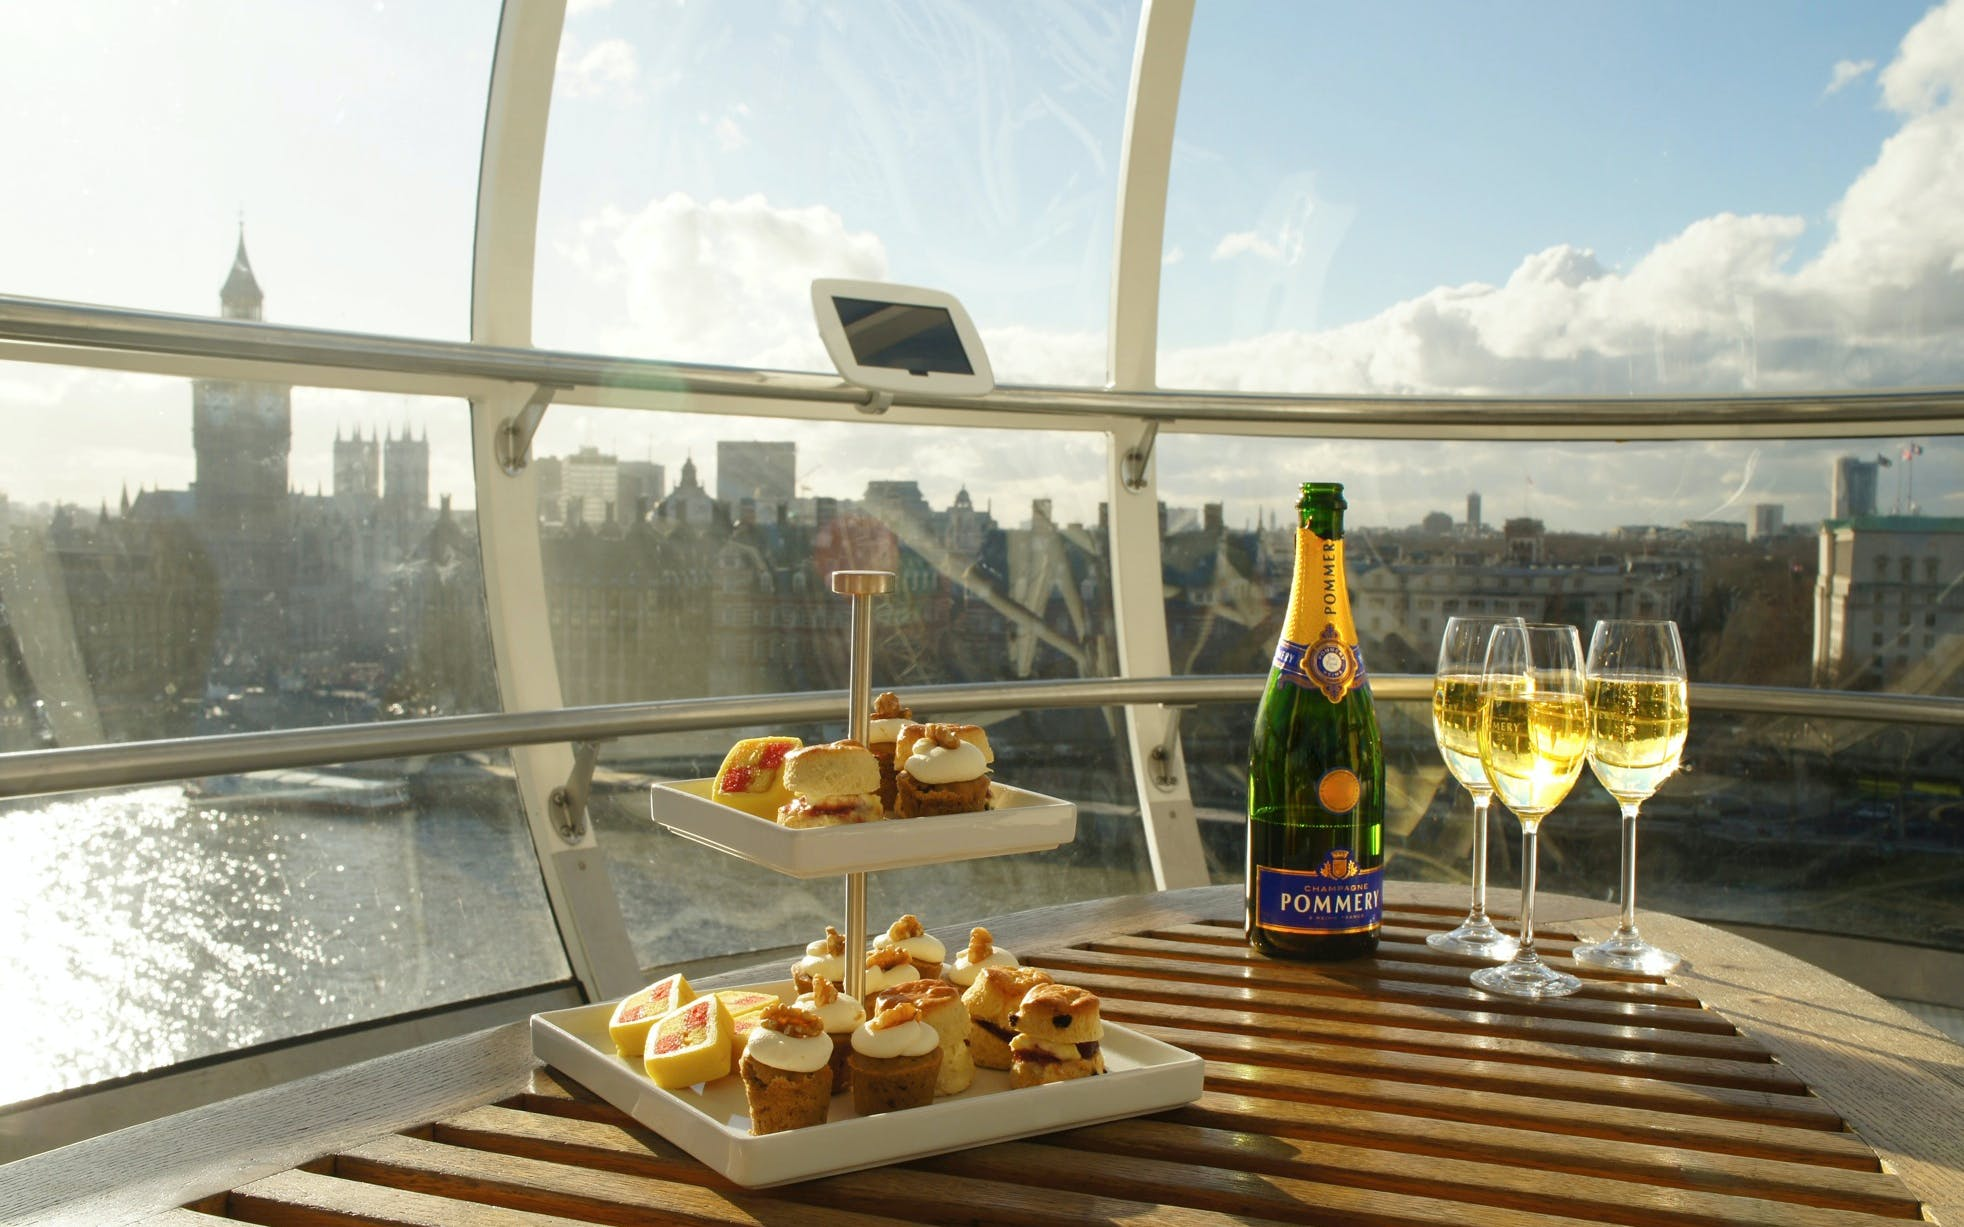 london eye champagne experience including fast track access-2